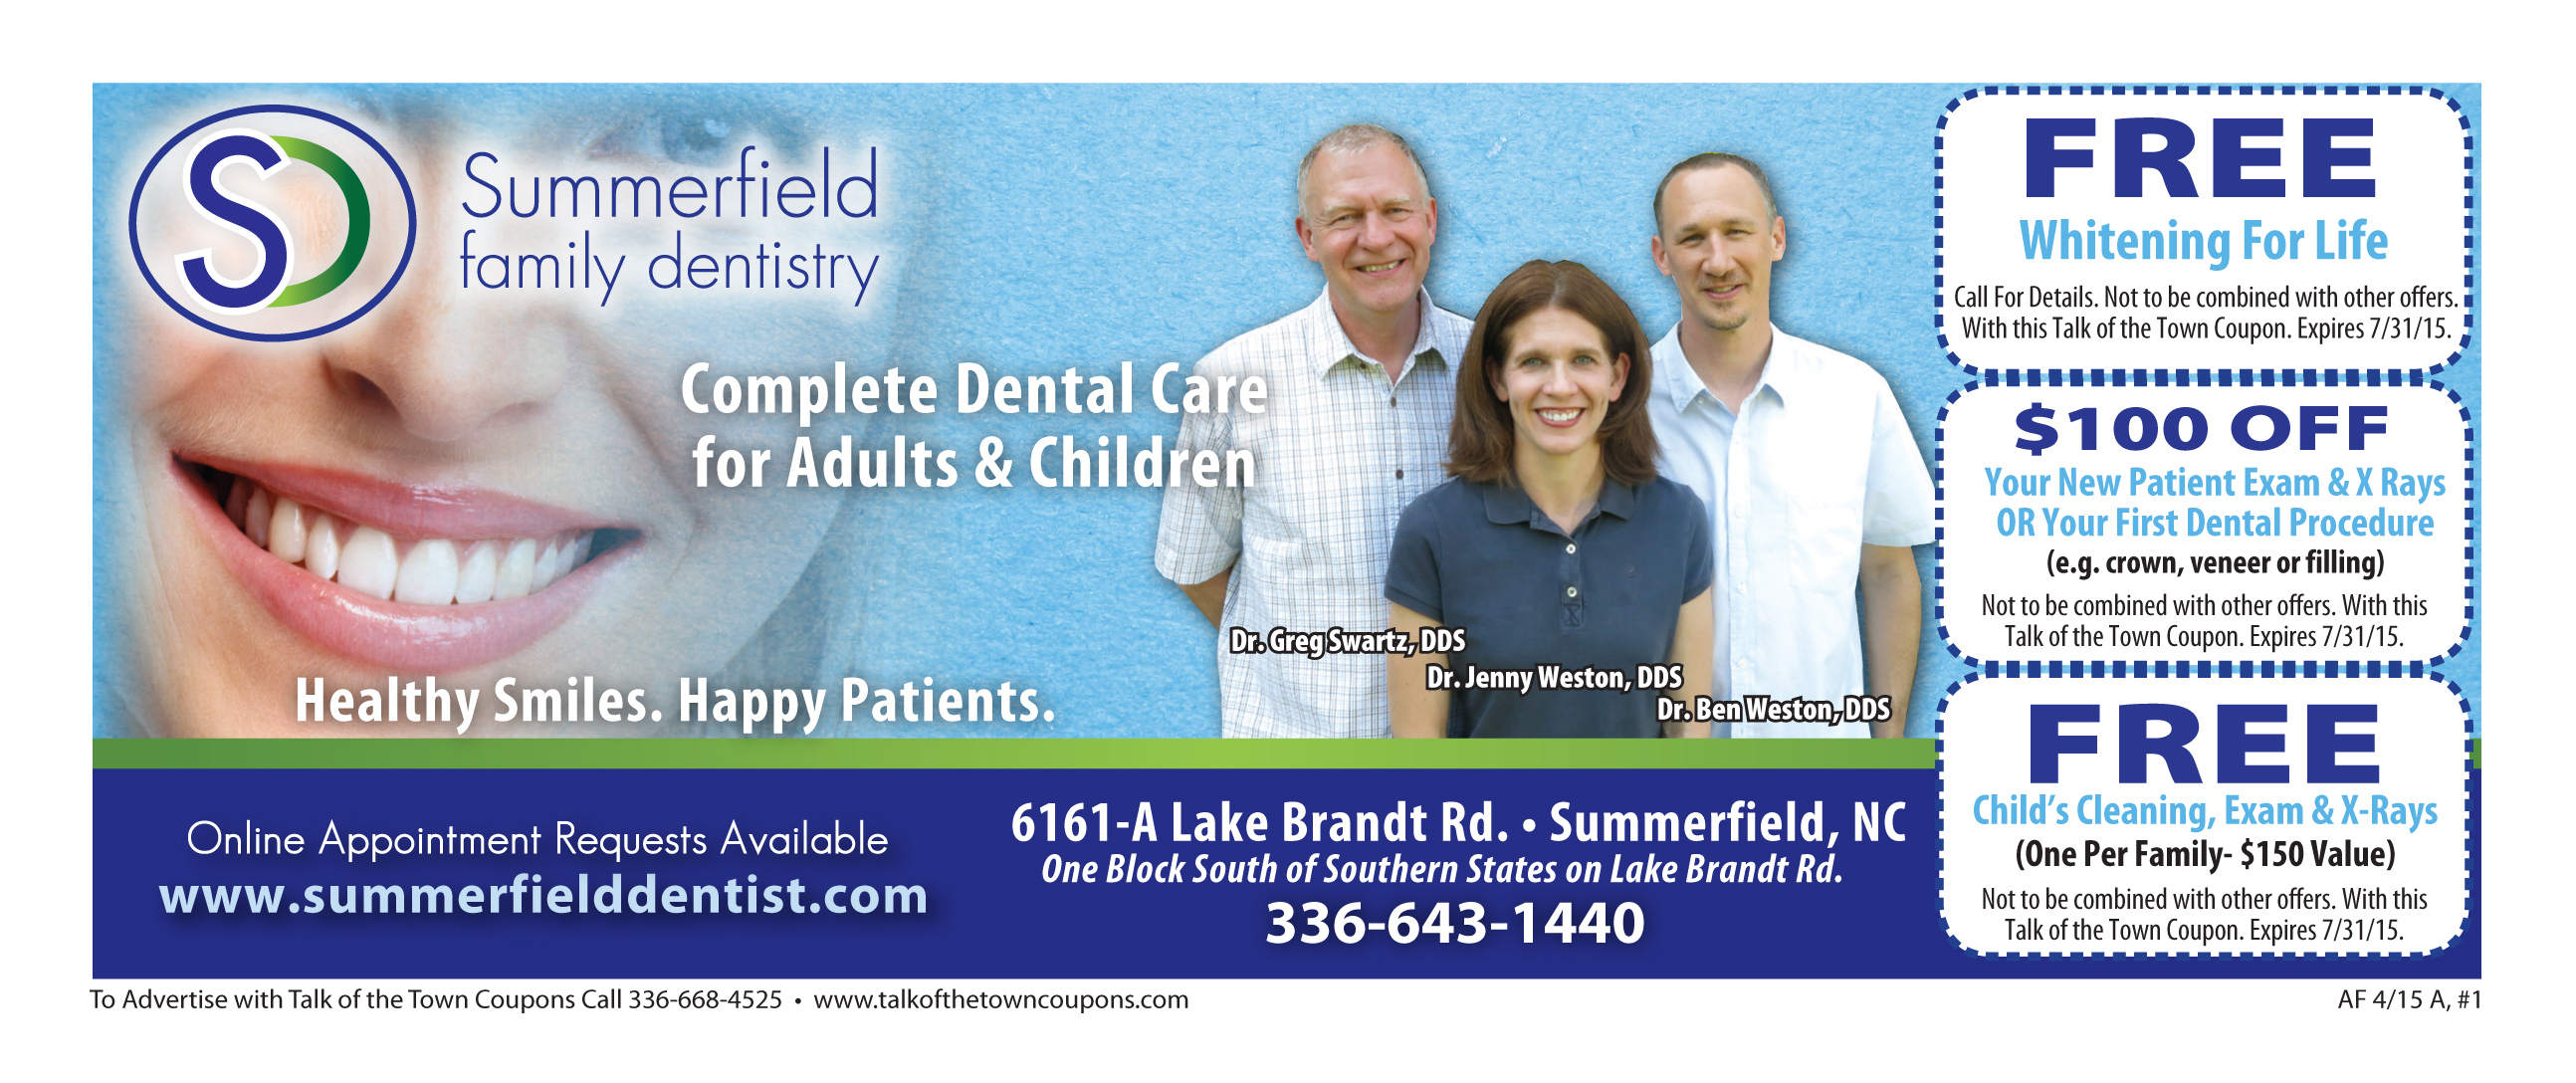 Summerfield Dentistry Booklet Offer Image